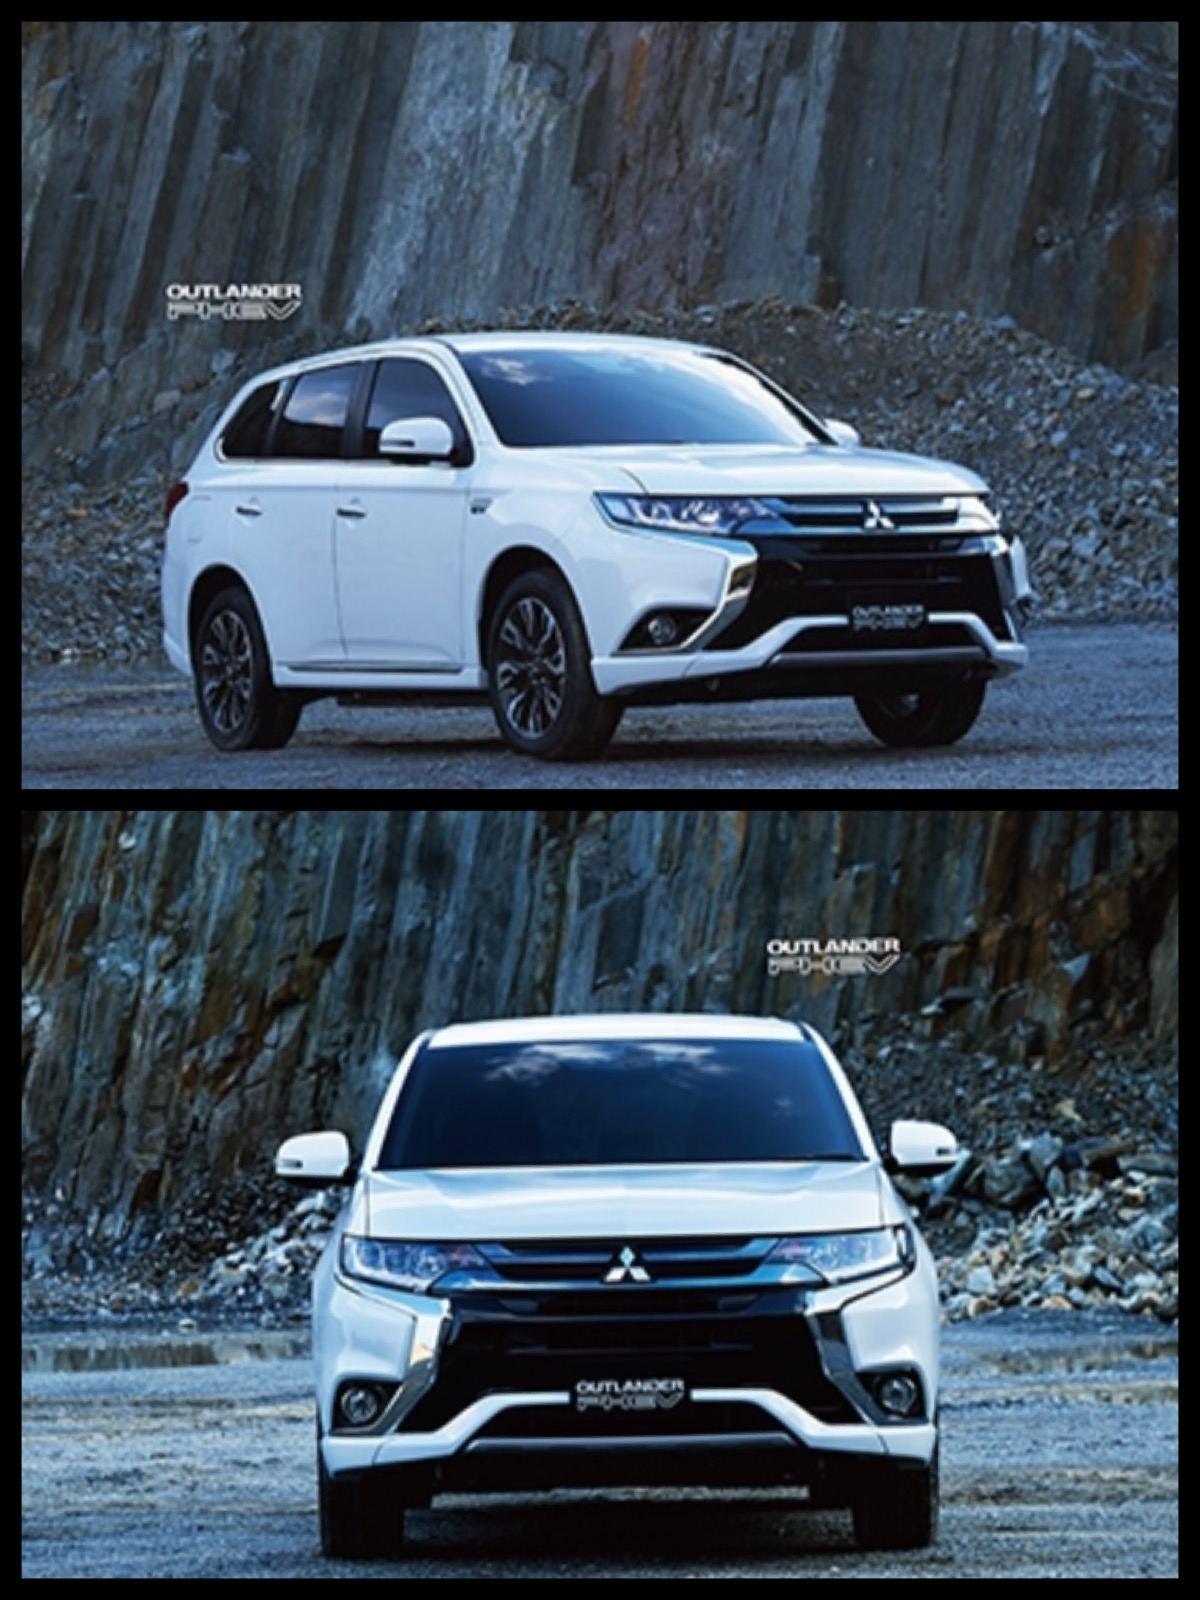 アウトランダーPHEV POWERFUL BUT SILENT